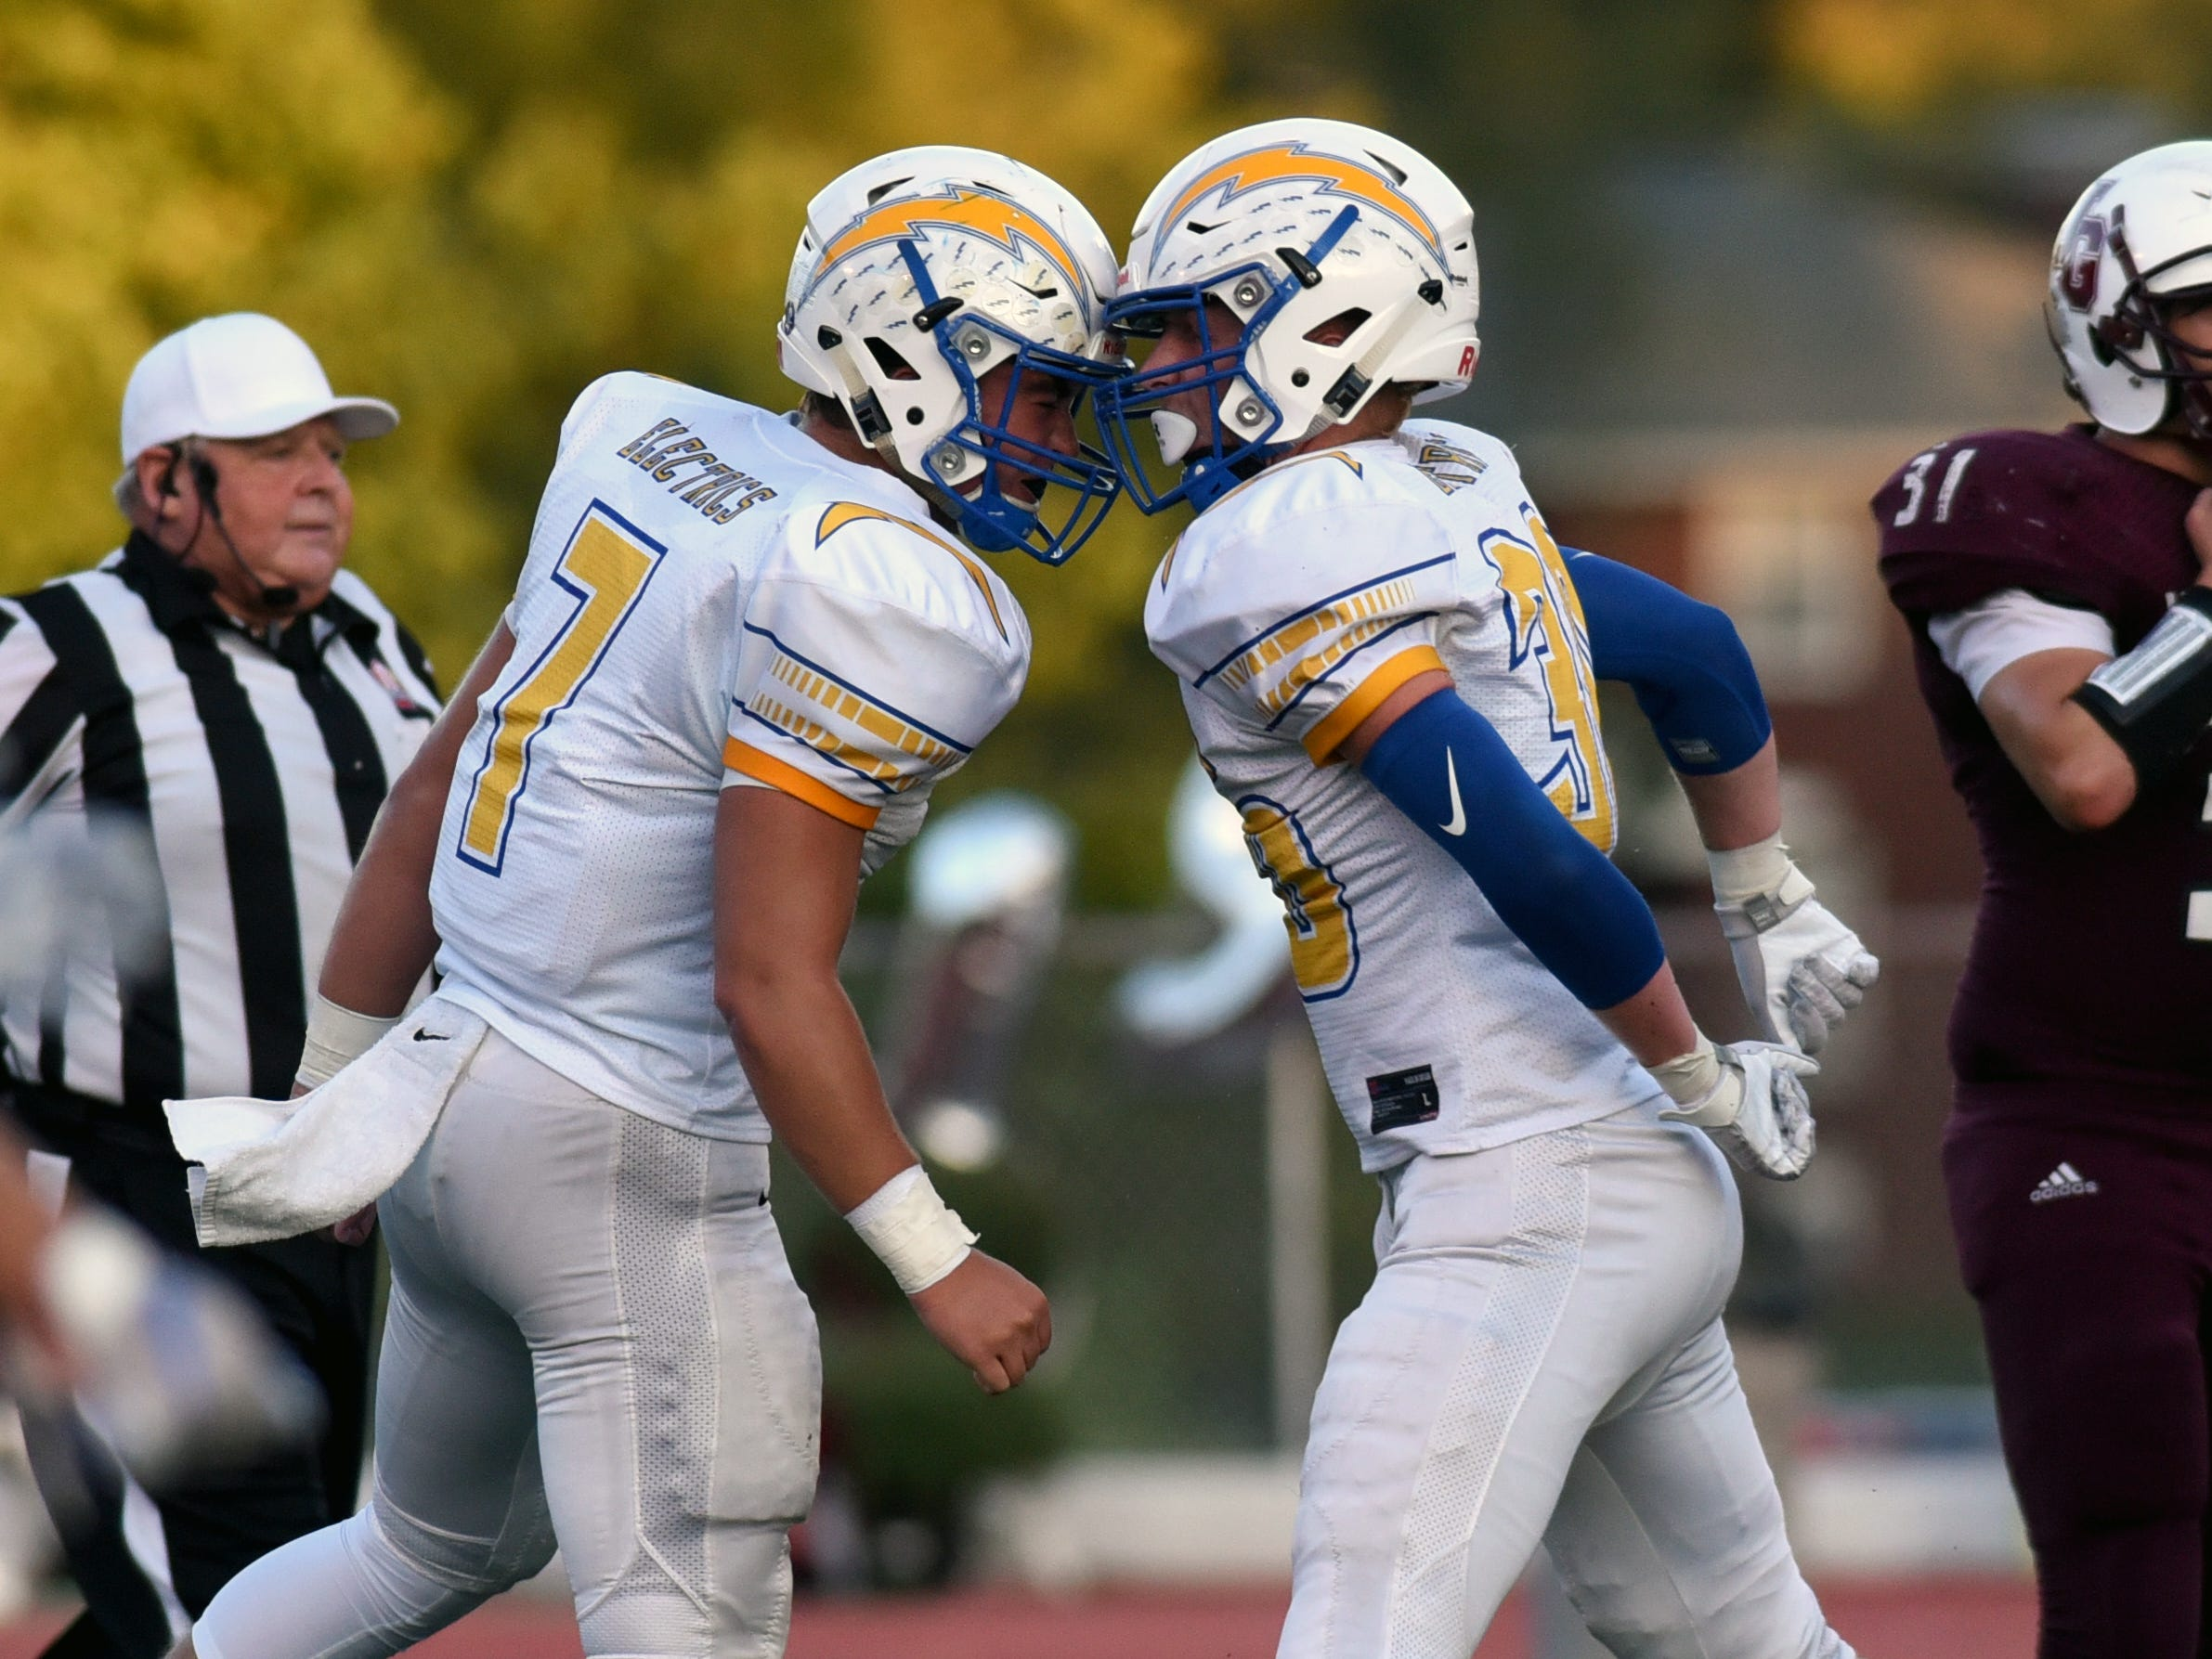 Philo players celebrate a sack in the first half against John Glenn.